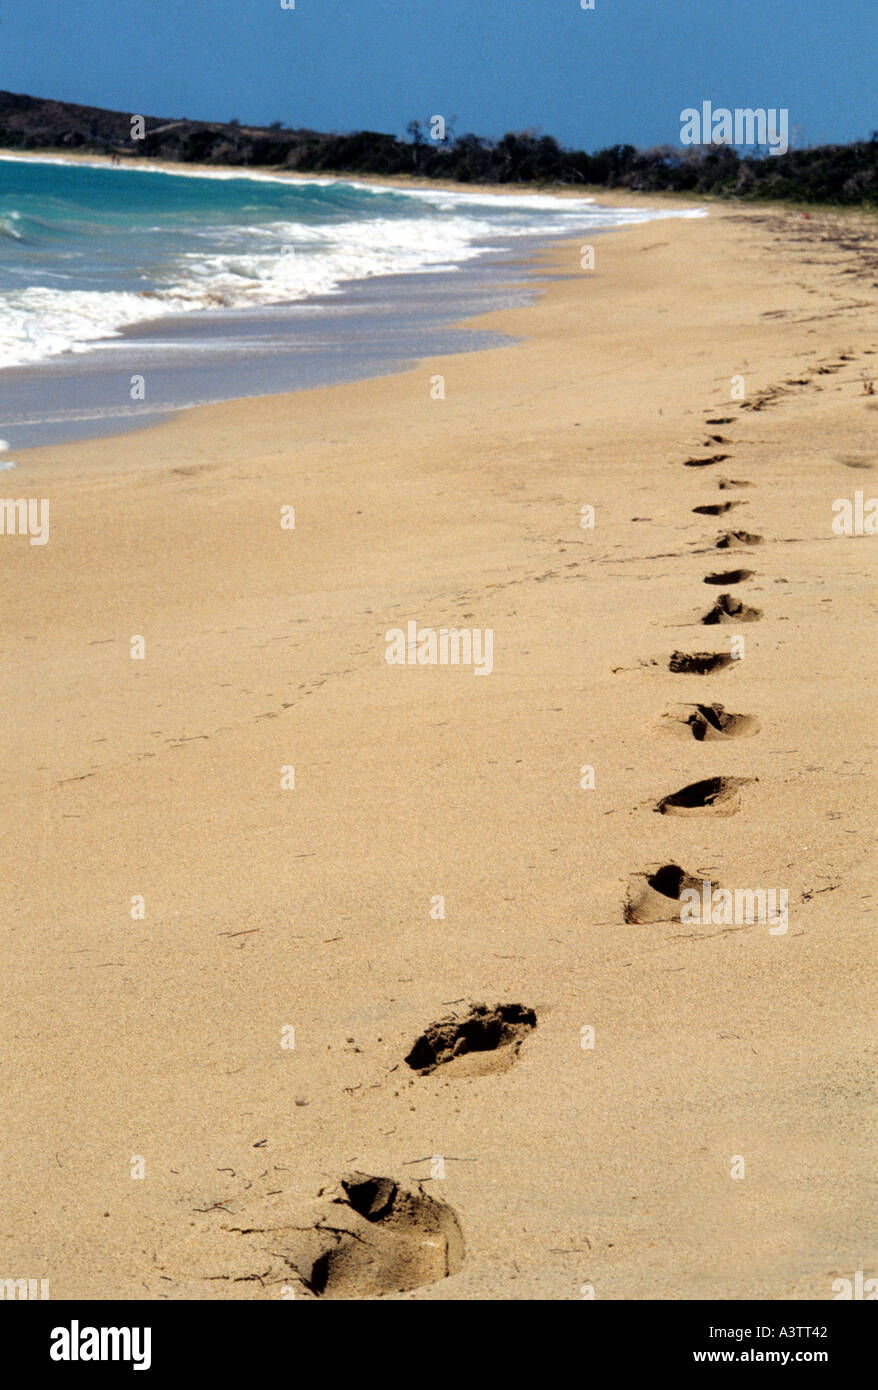 Sand Poem Stock Photos & Sand Poem Stock Images - Alamy